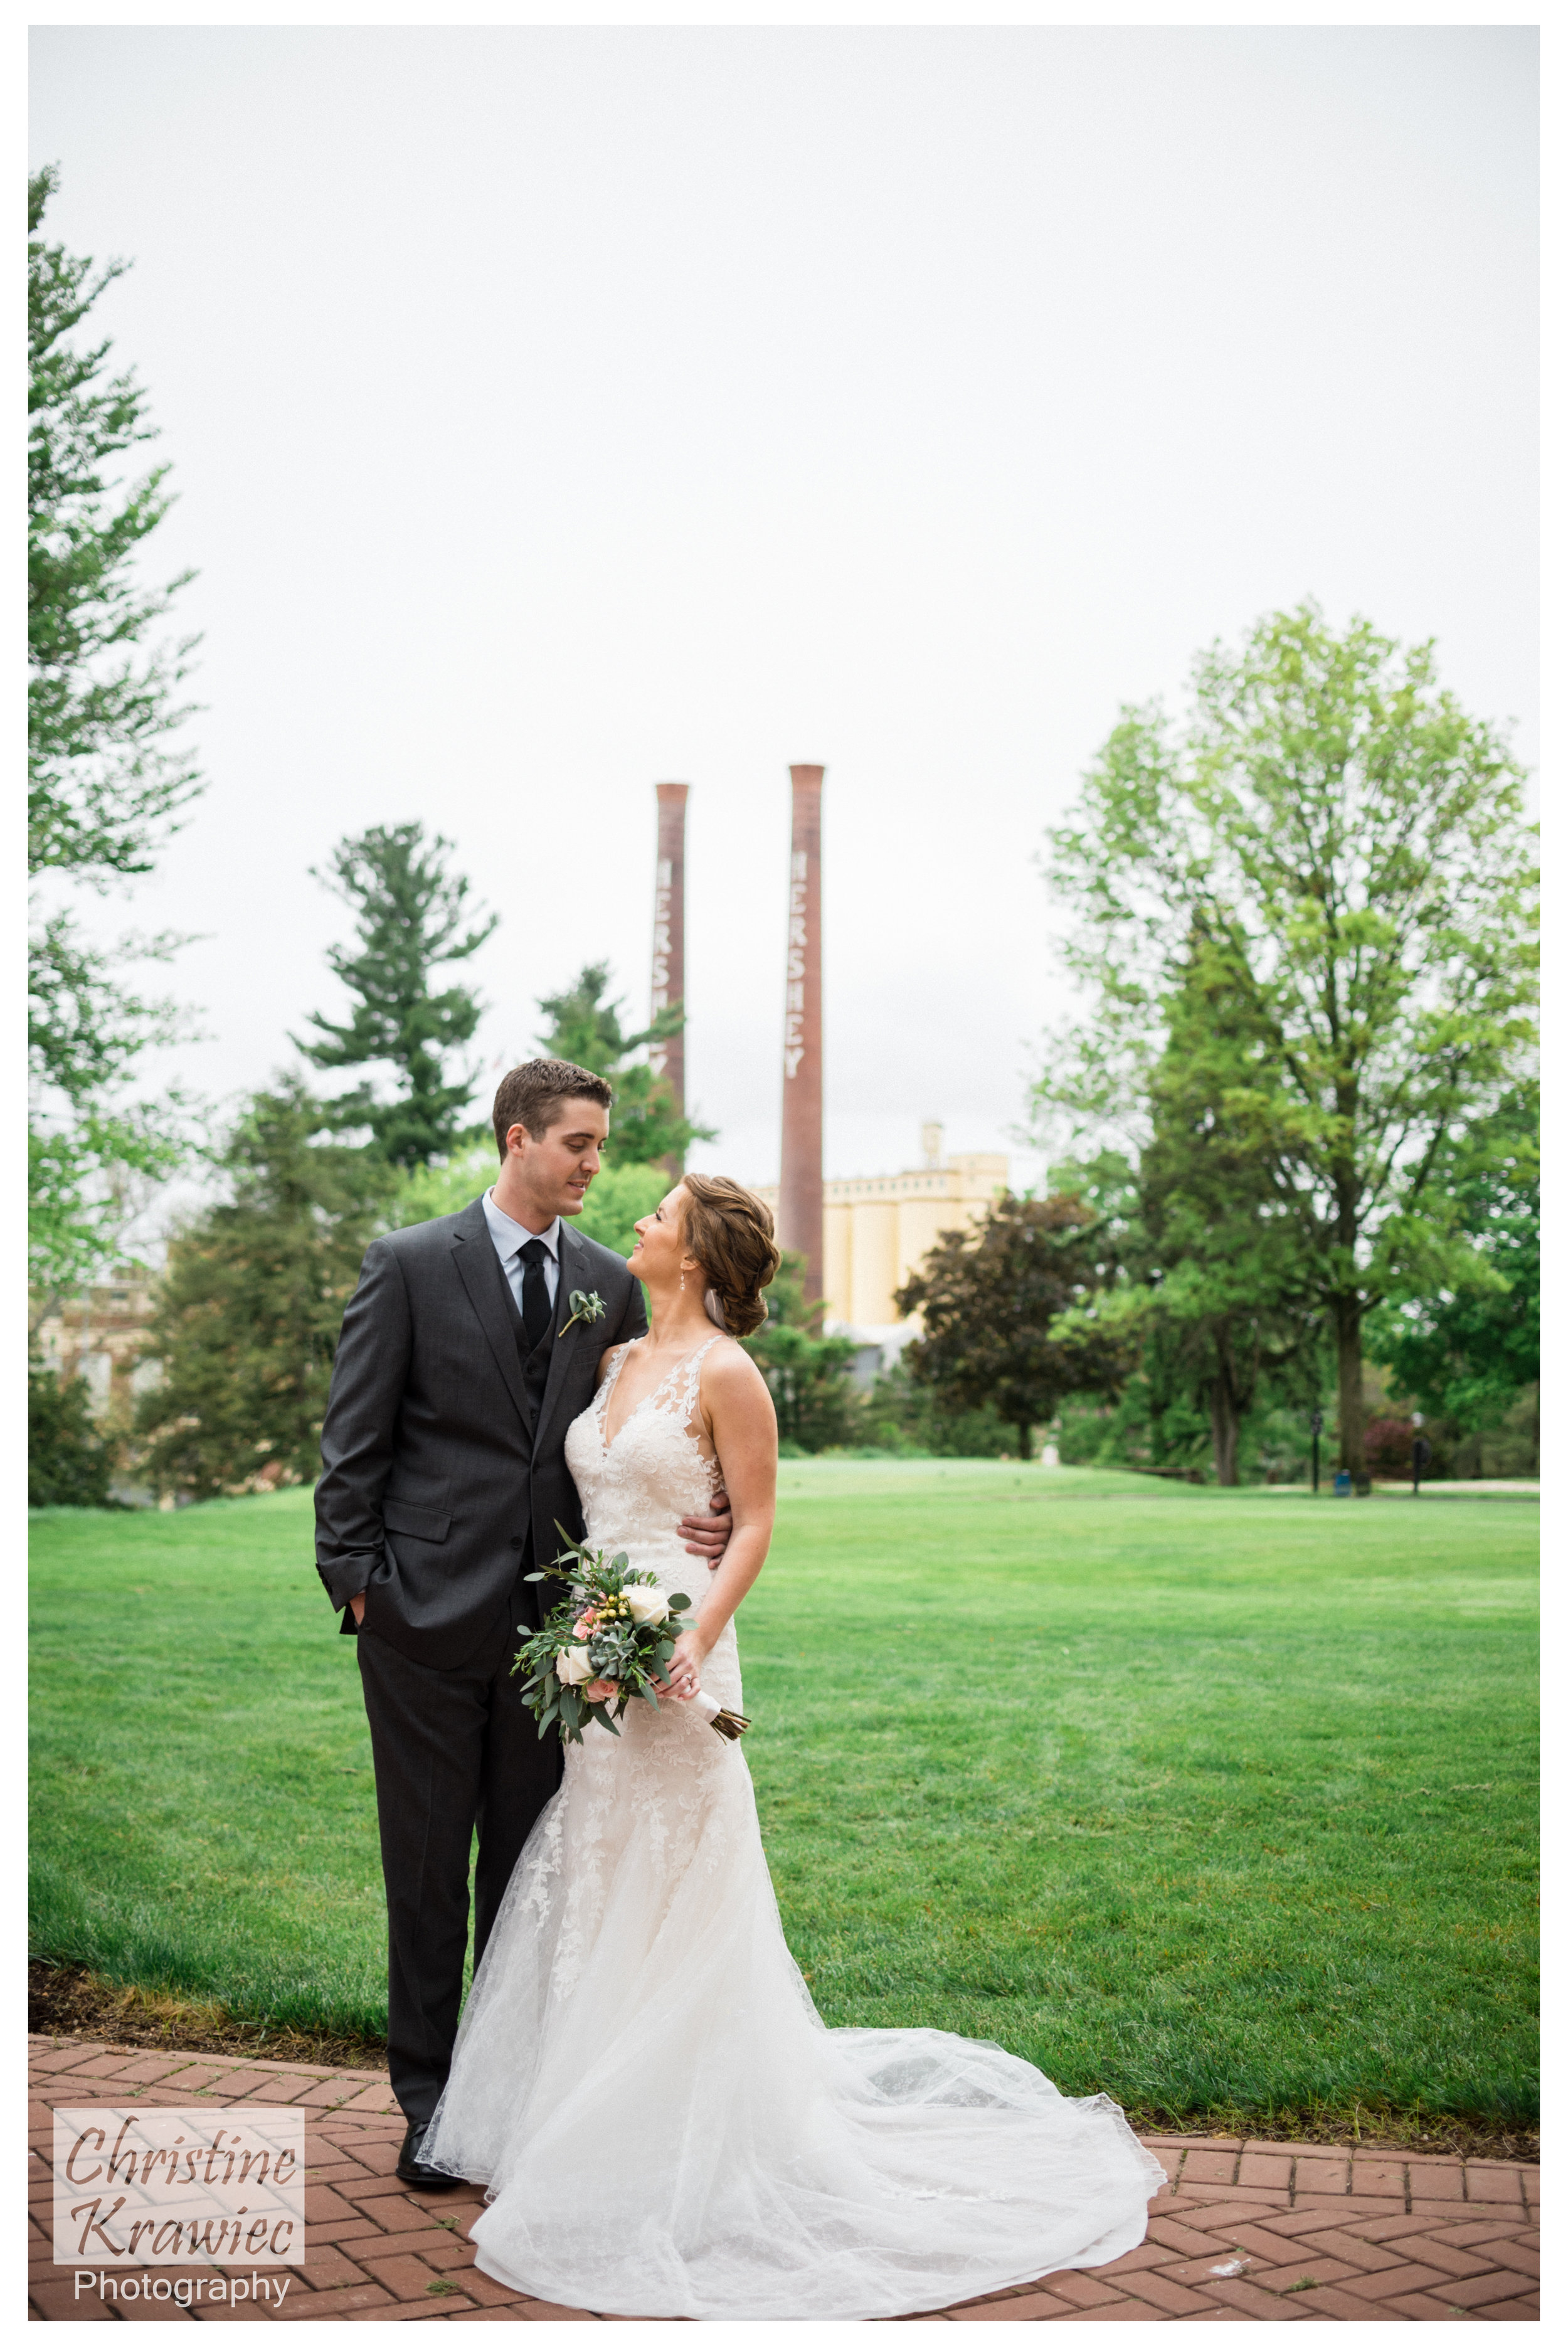 27 bride-and-groom-hershey-chocolate.jpg